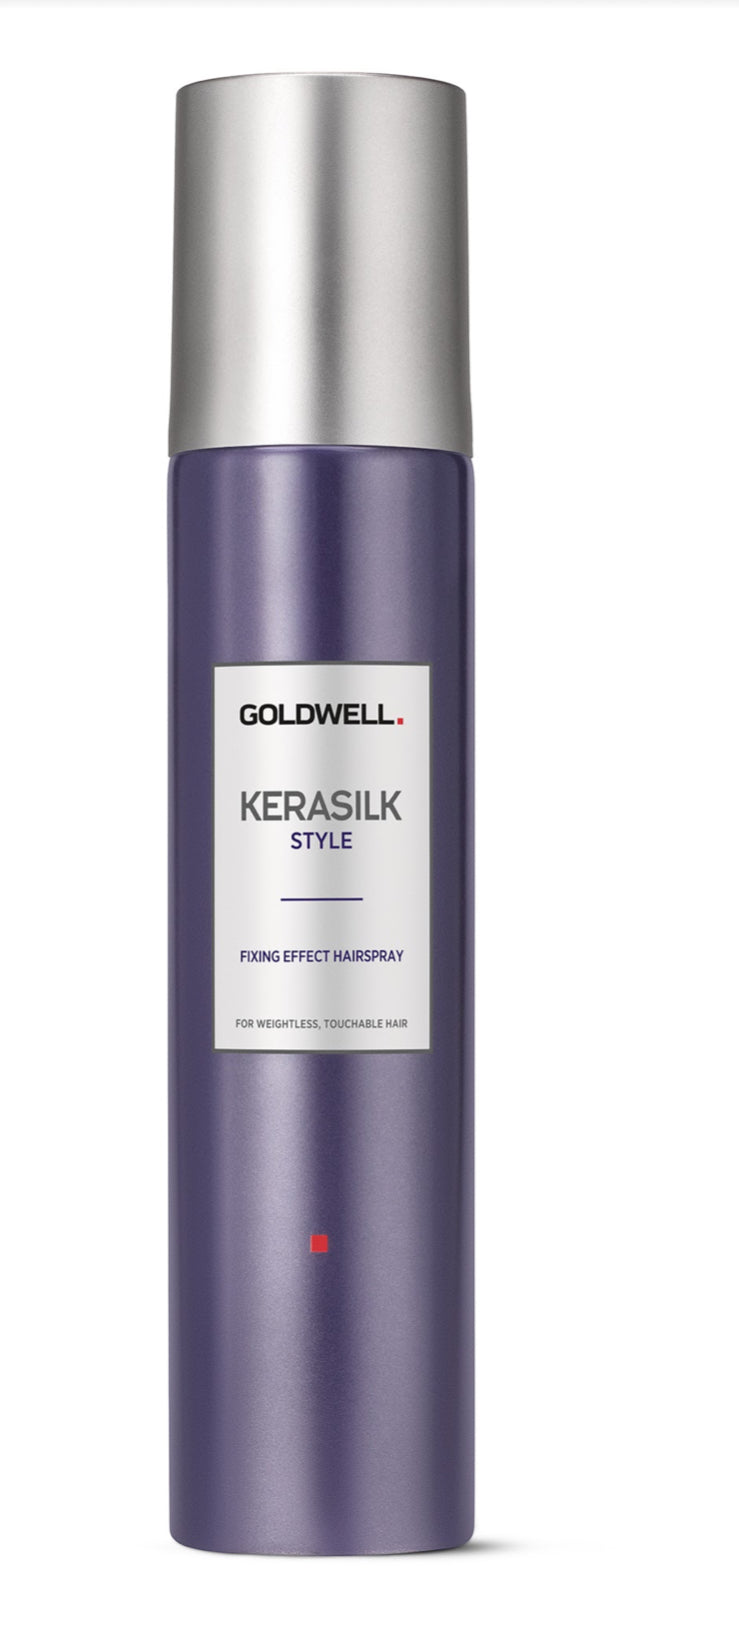 Kerasilk style fixing hairspray (300 ml)